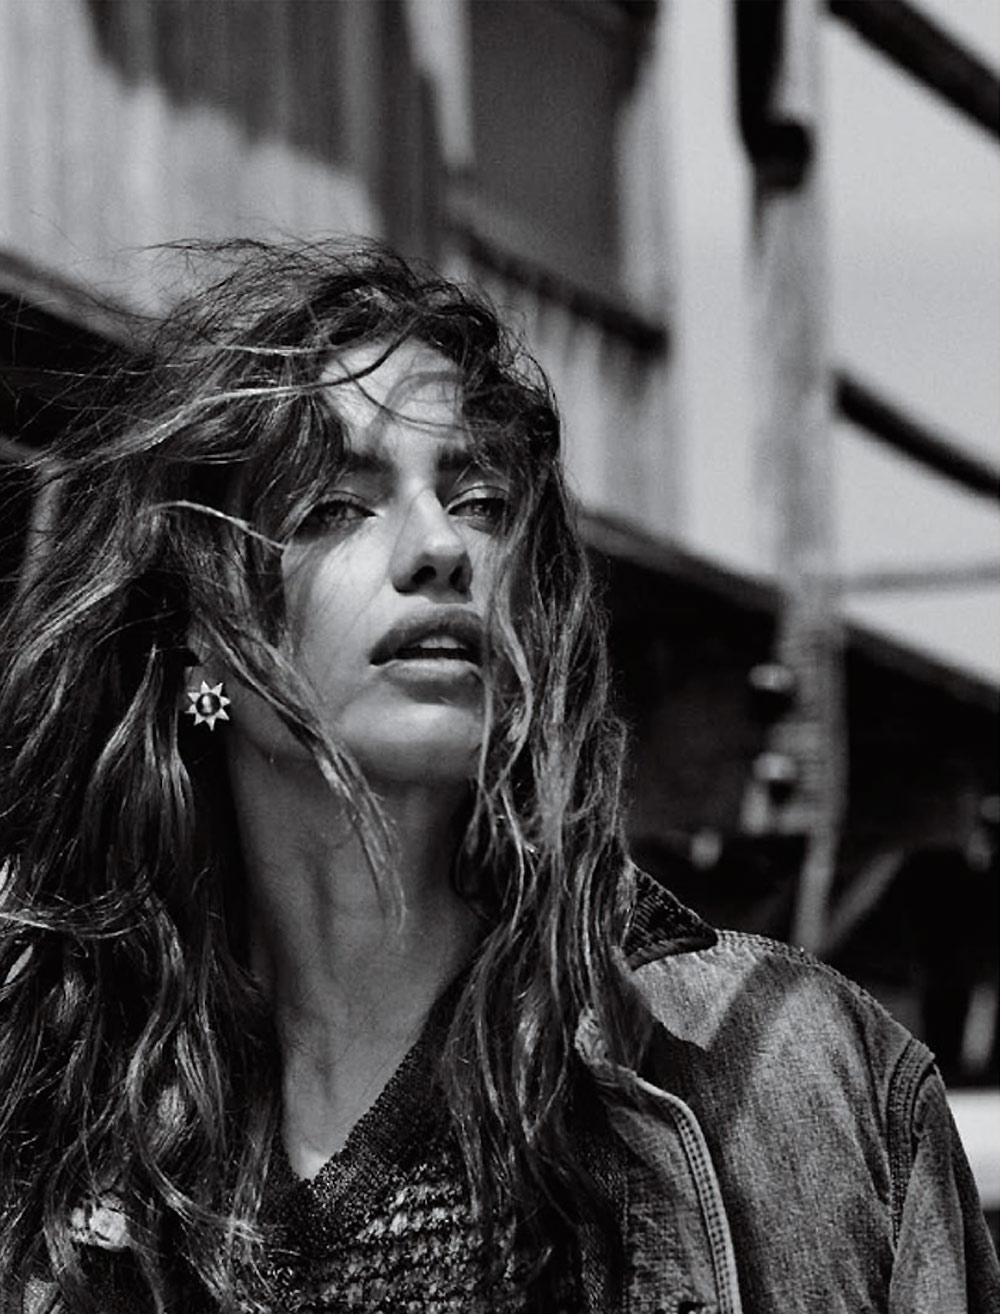 Irina, Shayk, model, giampaolo, sgura, photographer, vogue, brazil, august, 2014, editoiral,